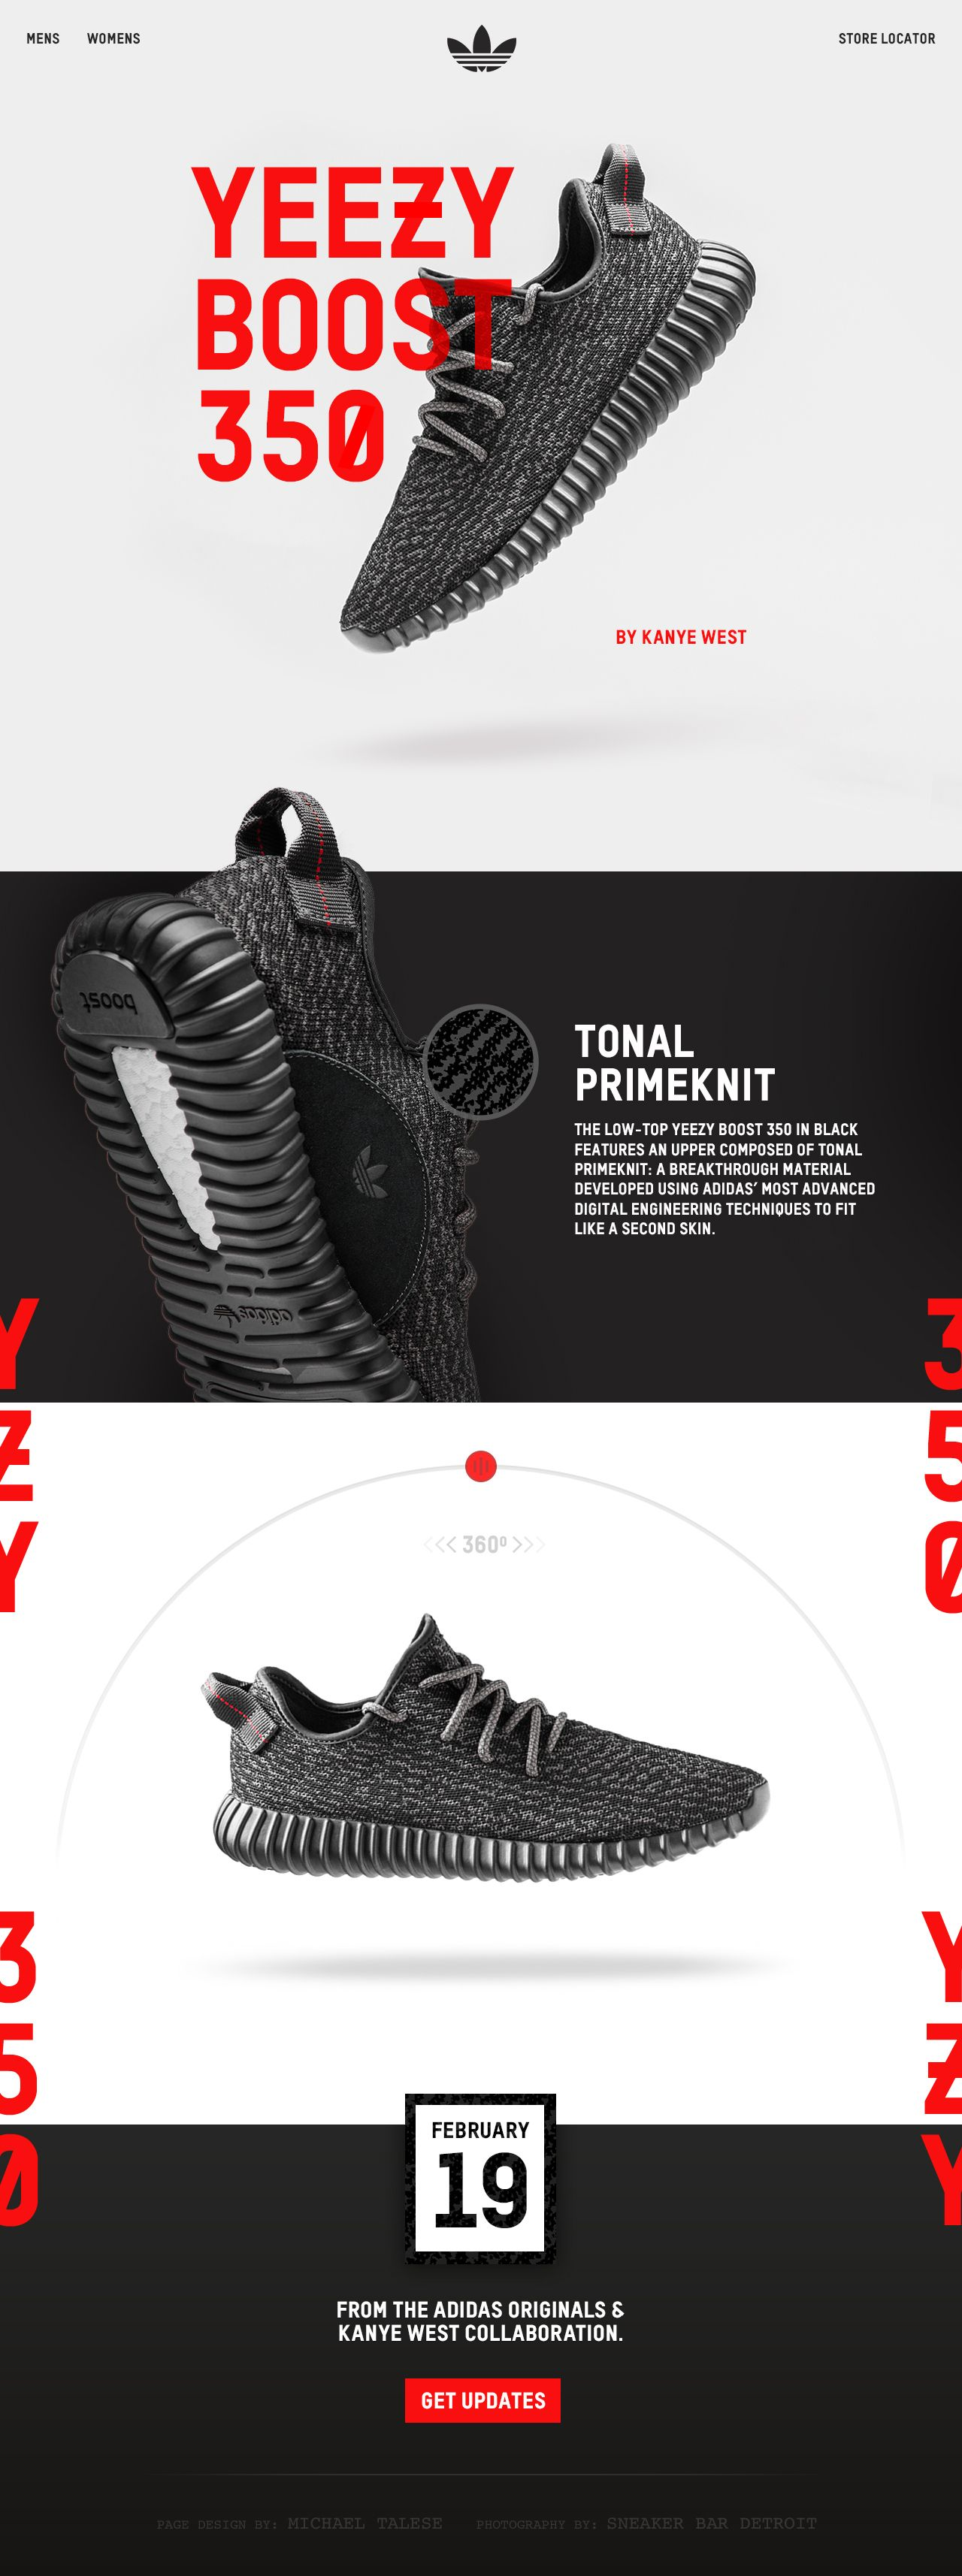 brand new e472f 7c8b5 Product page concept for the restock of the YEEZY BOOST 350. By Michael  Talese  Design  Digital  UI  Kanye  YZY350